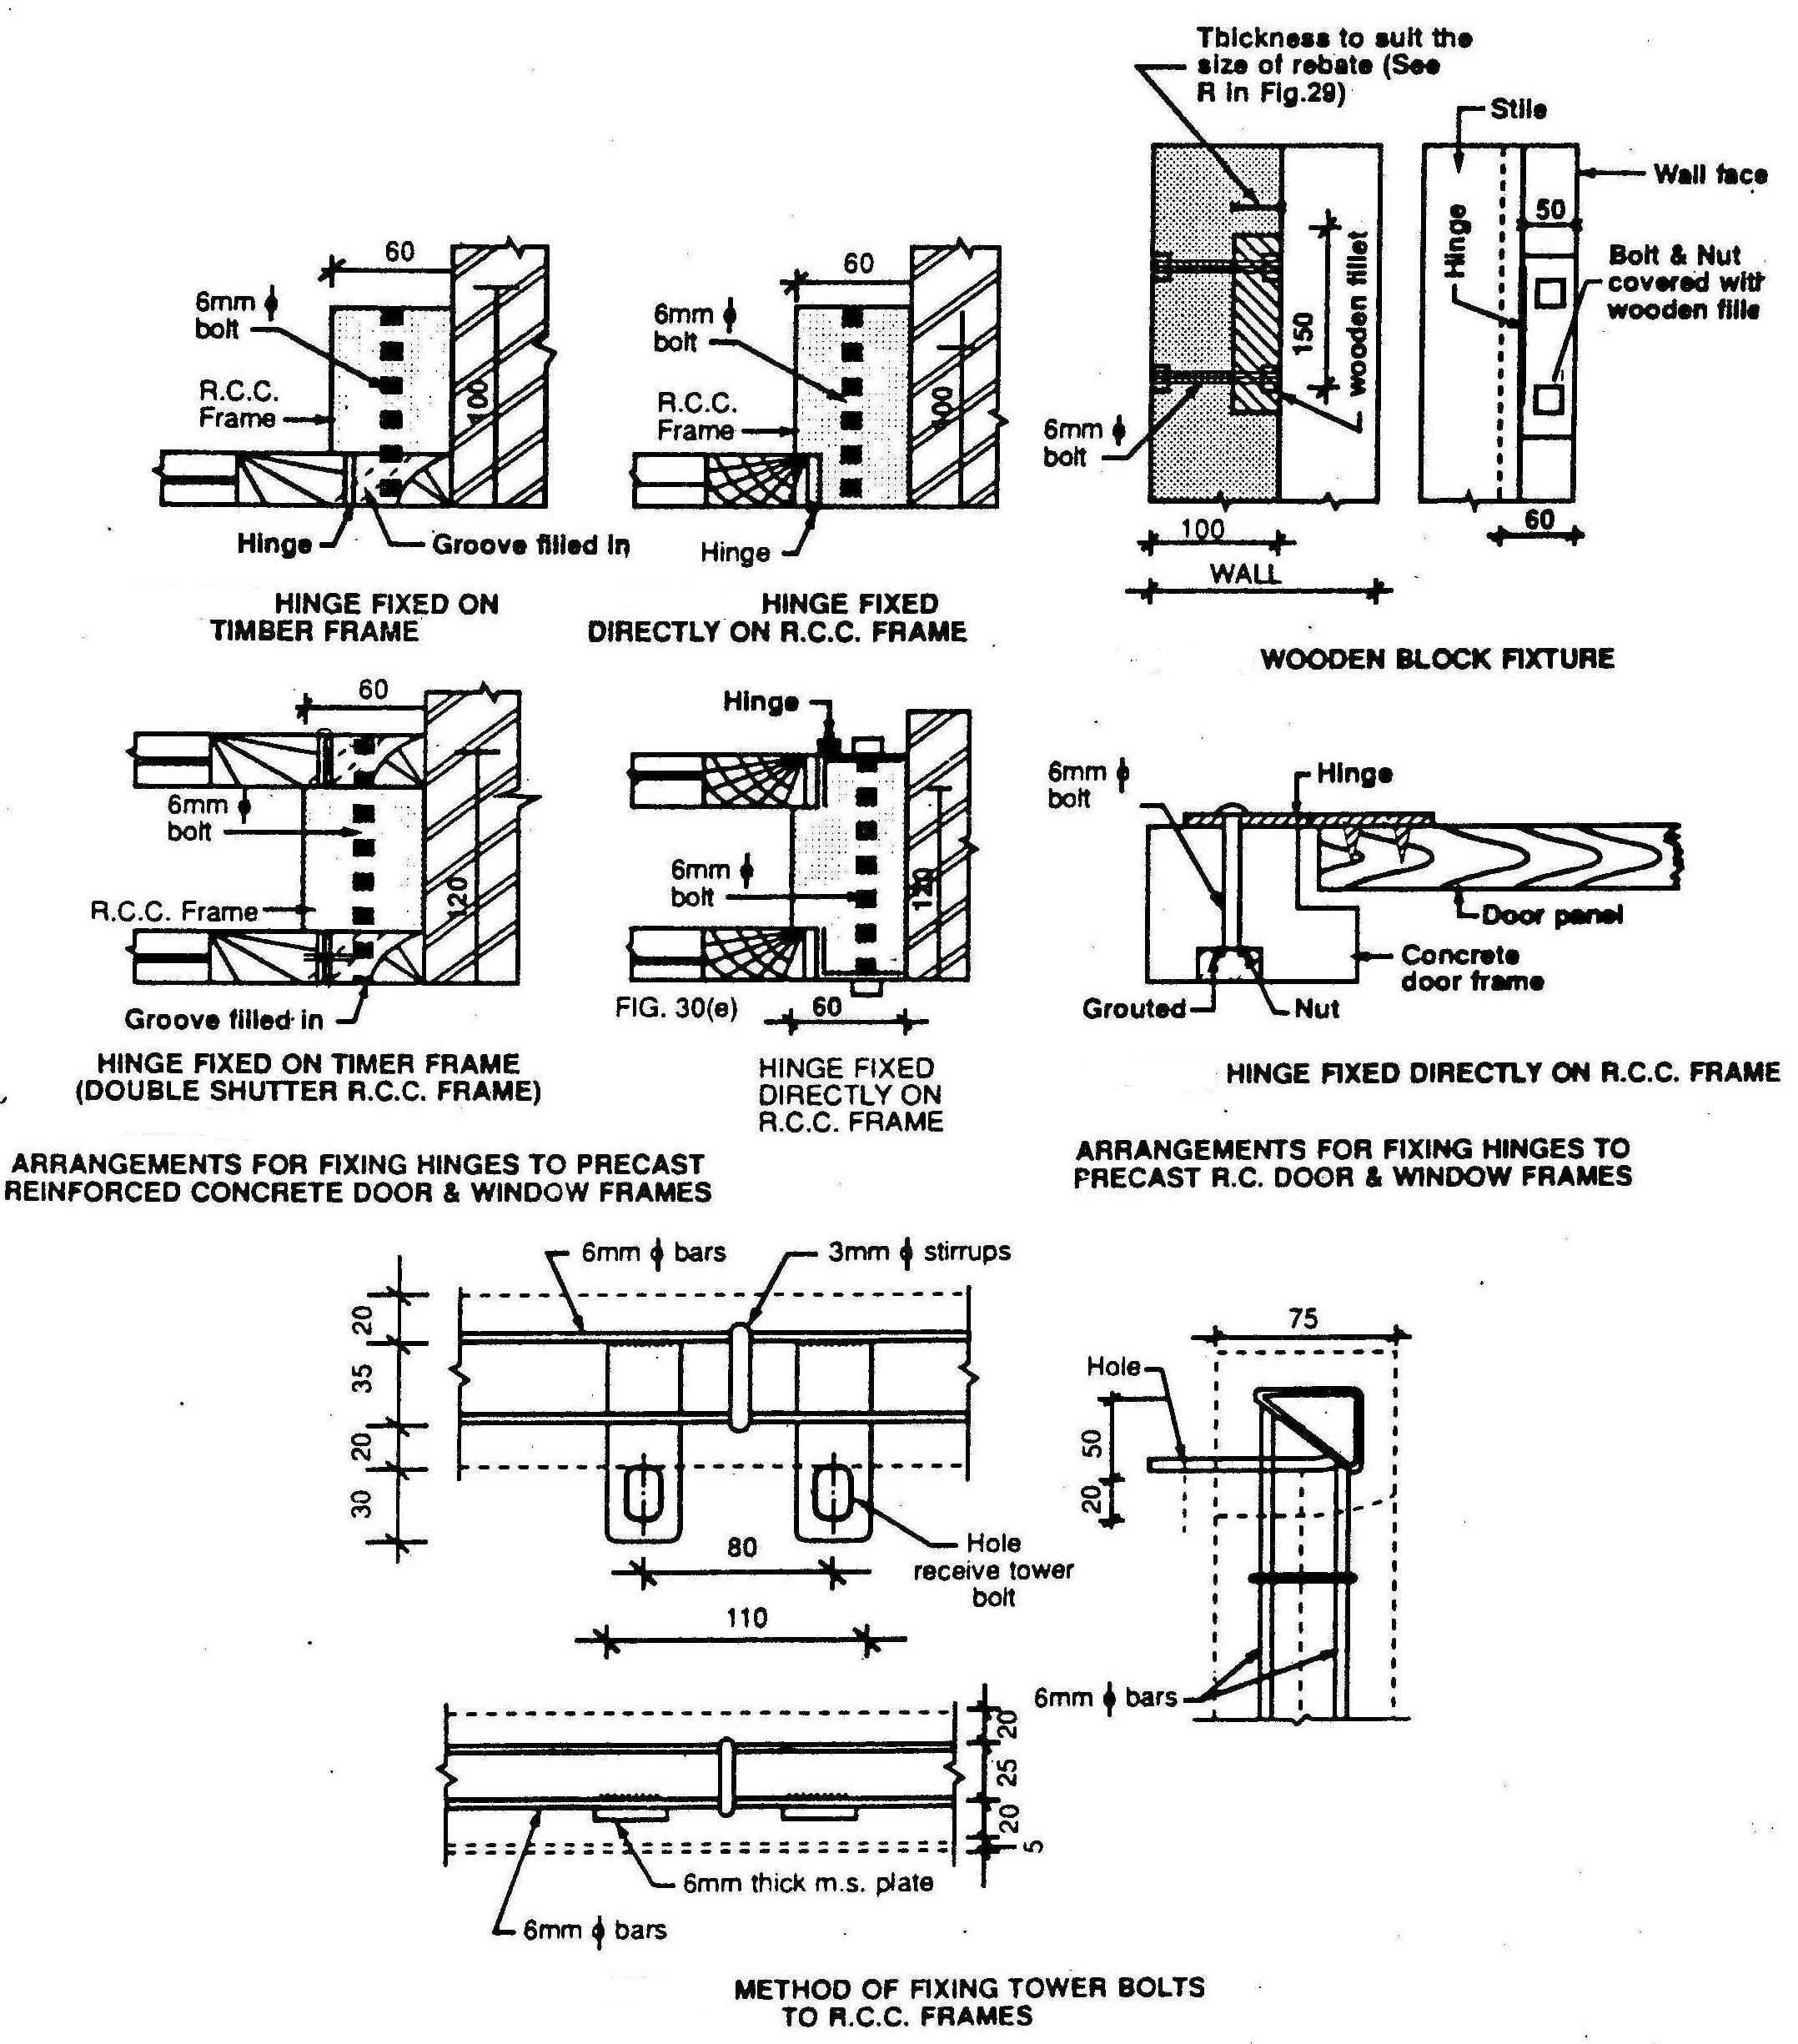 Details of Fixing Hinges in Precast Frames